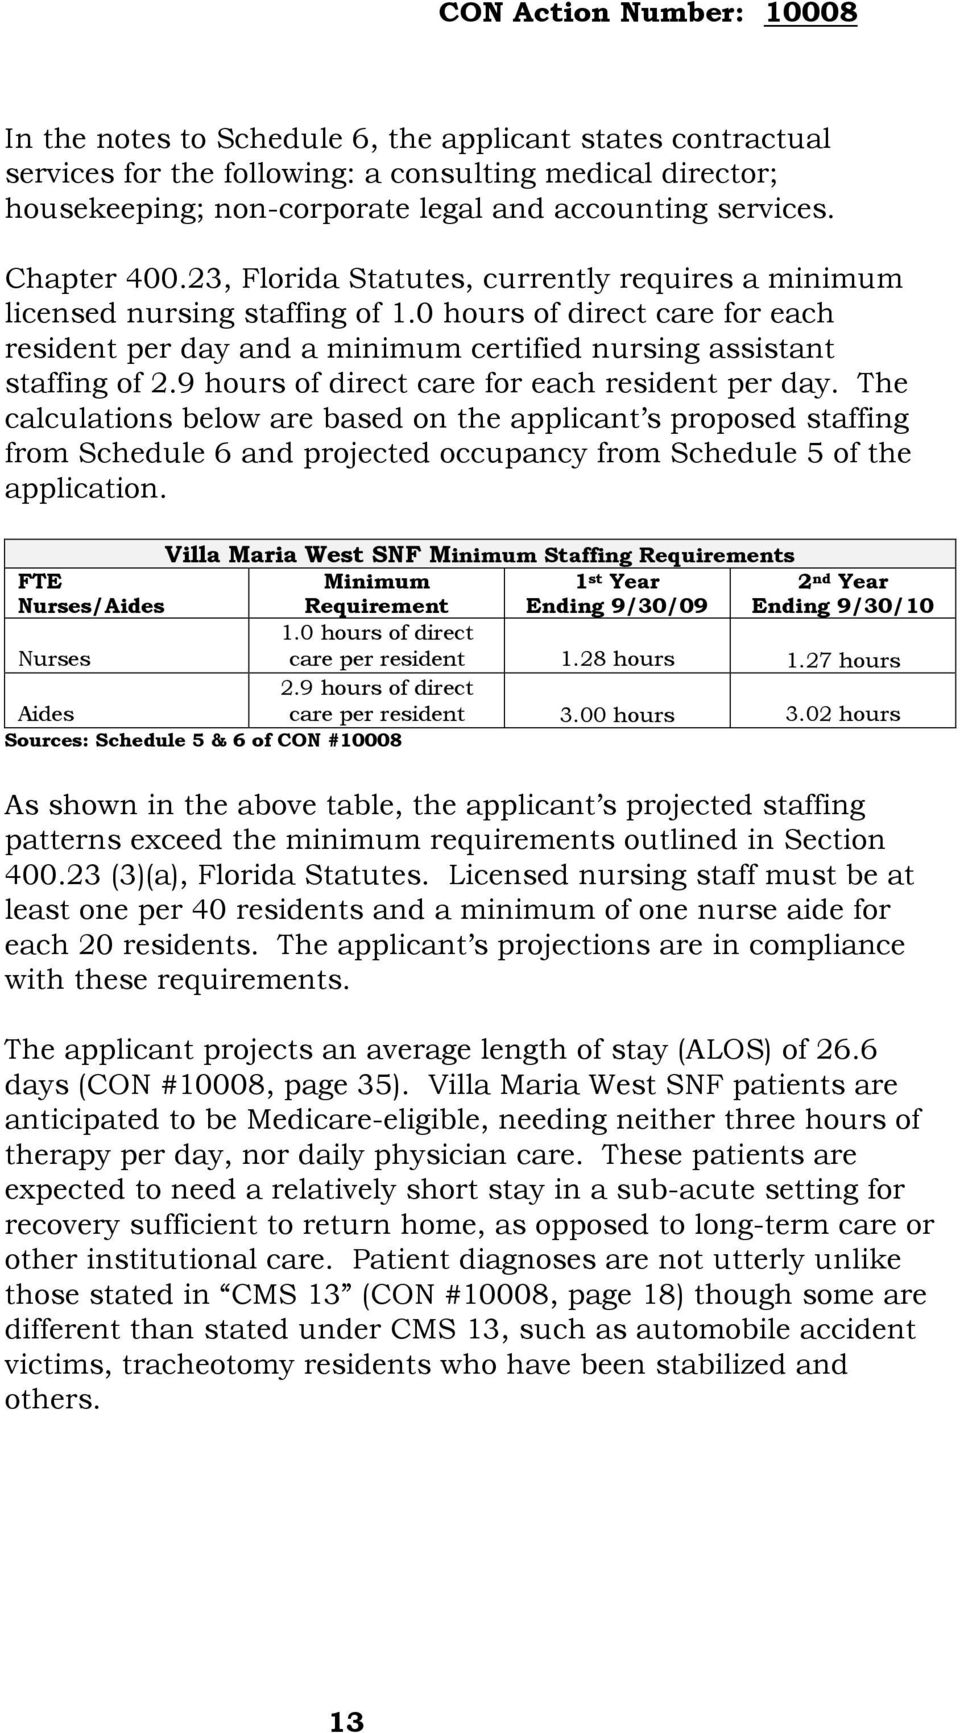 9 hours of direct care for each resident per day. The calculations below are based on the applicant s proposed staffing from Schedule 6 and projected occupancy from Schedule 5 of the application.